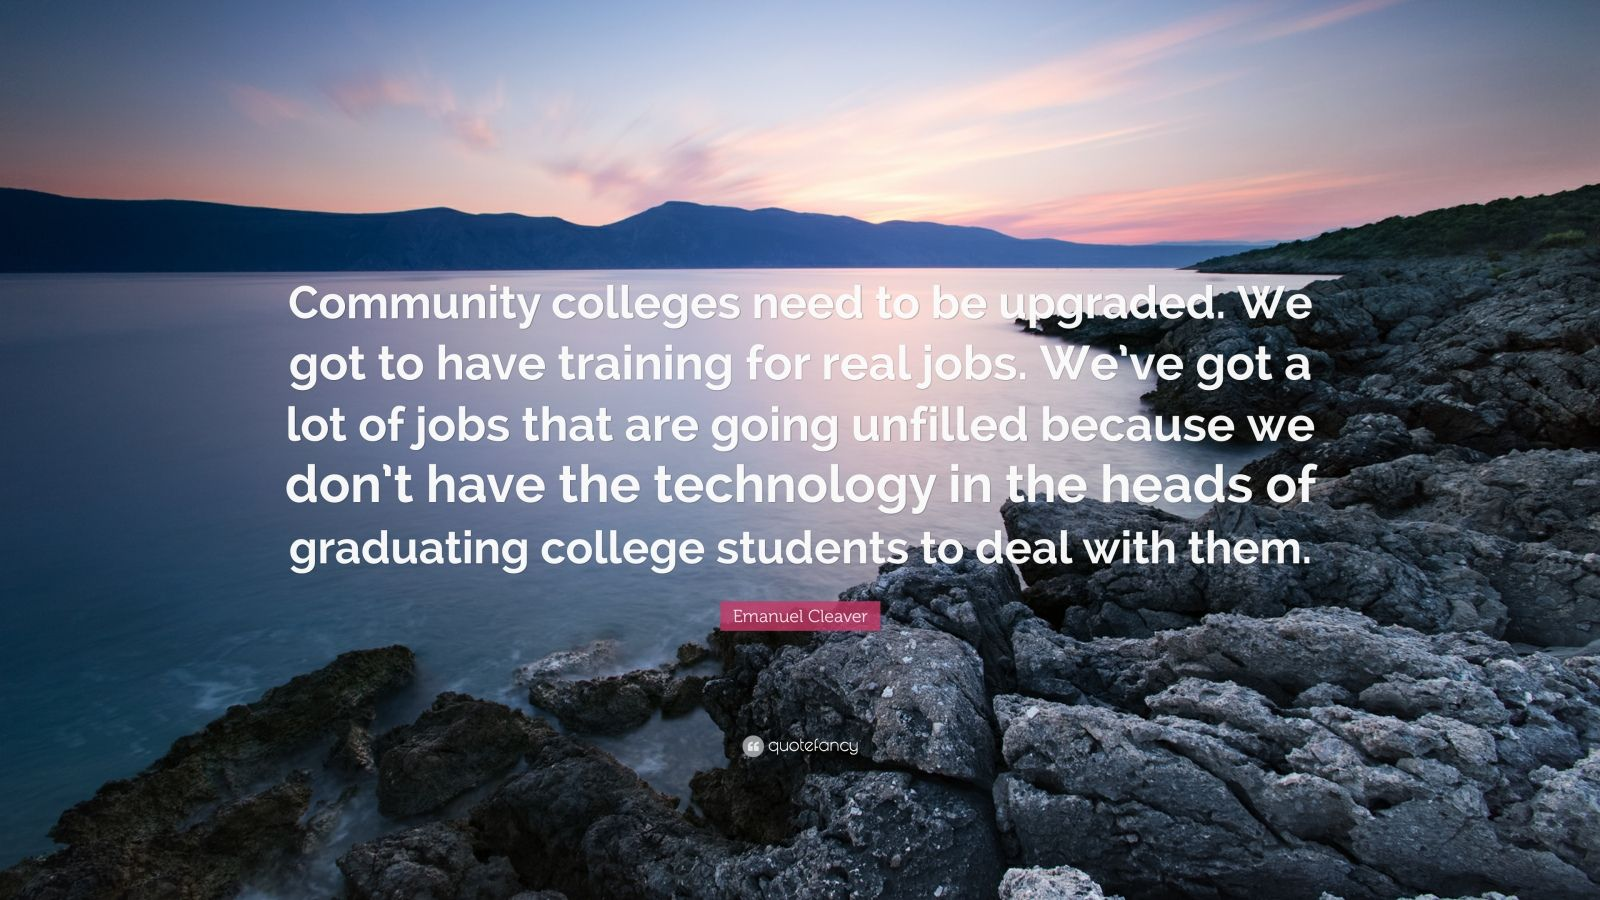 """Emanuel Cleaver Quote: """"Community colleges need to be upgraded. We got to have training for real jobs. We've got a lot of jobs that are going unfilled because we don't have the technology in the heads of graduating college students to deal with them."""""""